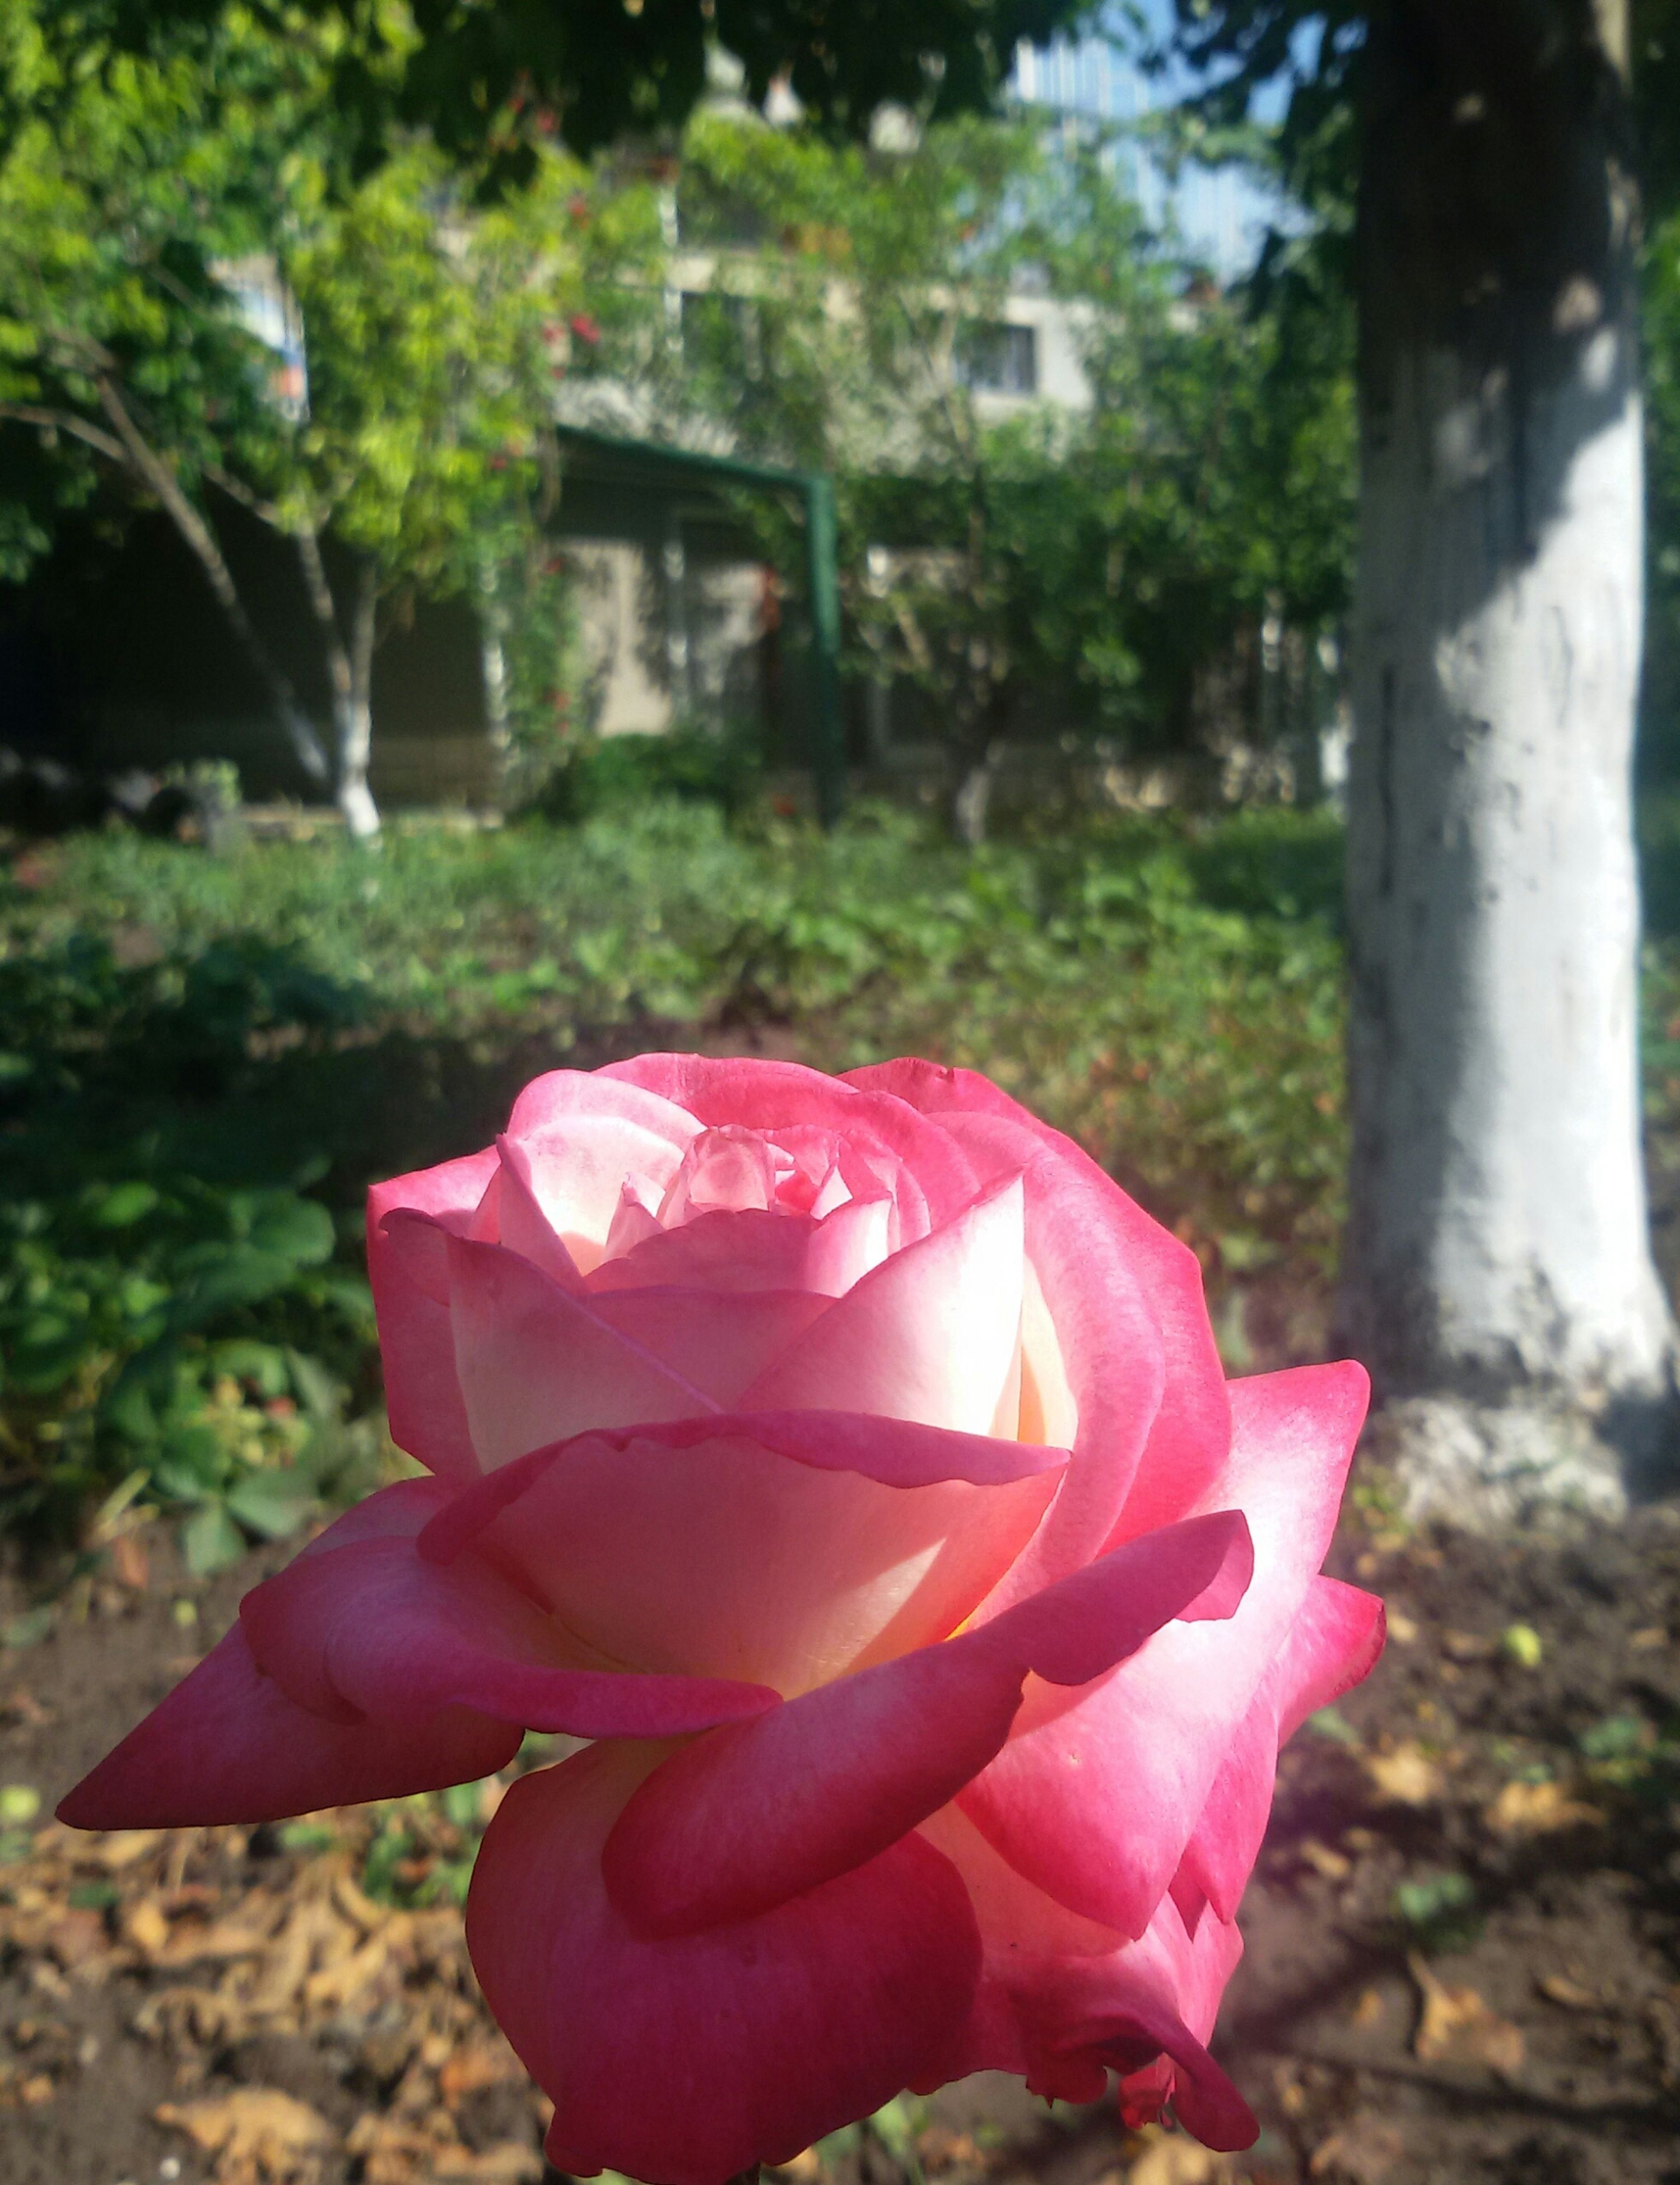 flower, petal, fragility, flower head, freshness, rose - flower, growth, beauty in nature, focus on foreground, pink color, close-up, blooming, nature, single flower, red, plant, park - man made space, day, in bloom, outdoors